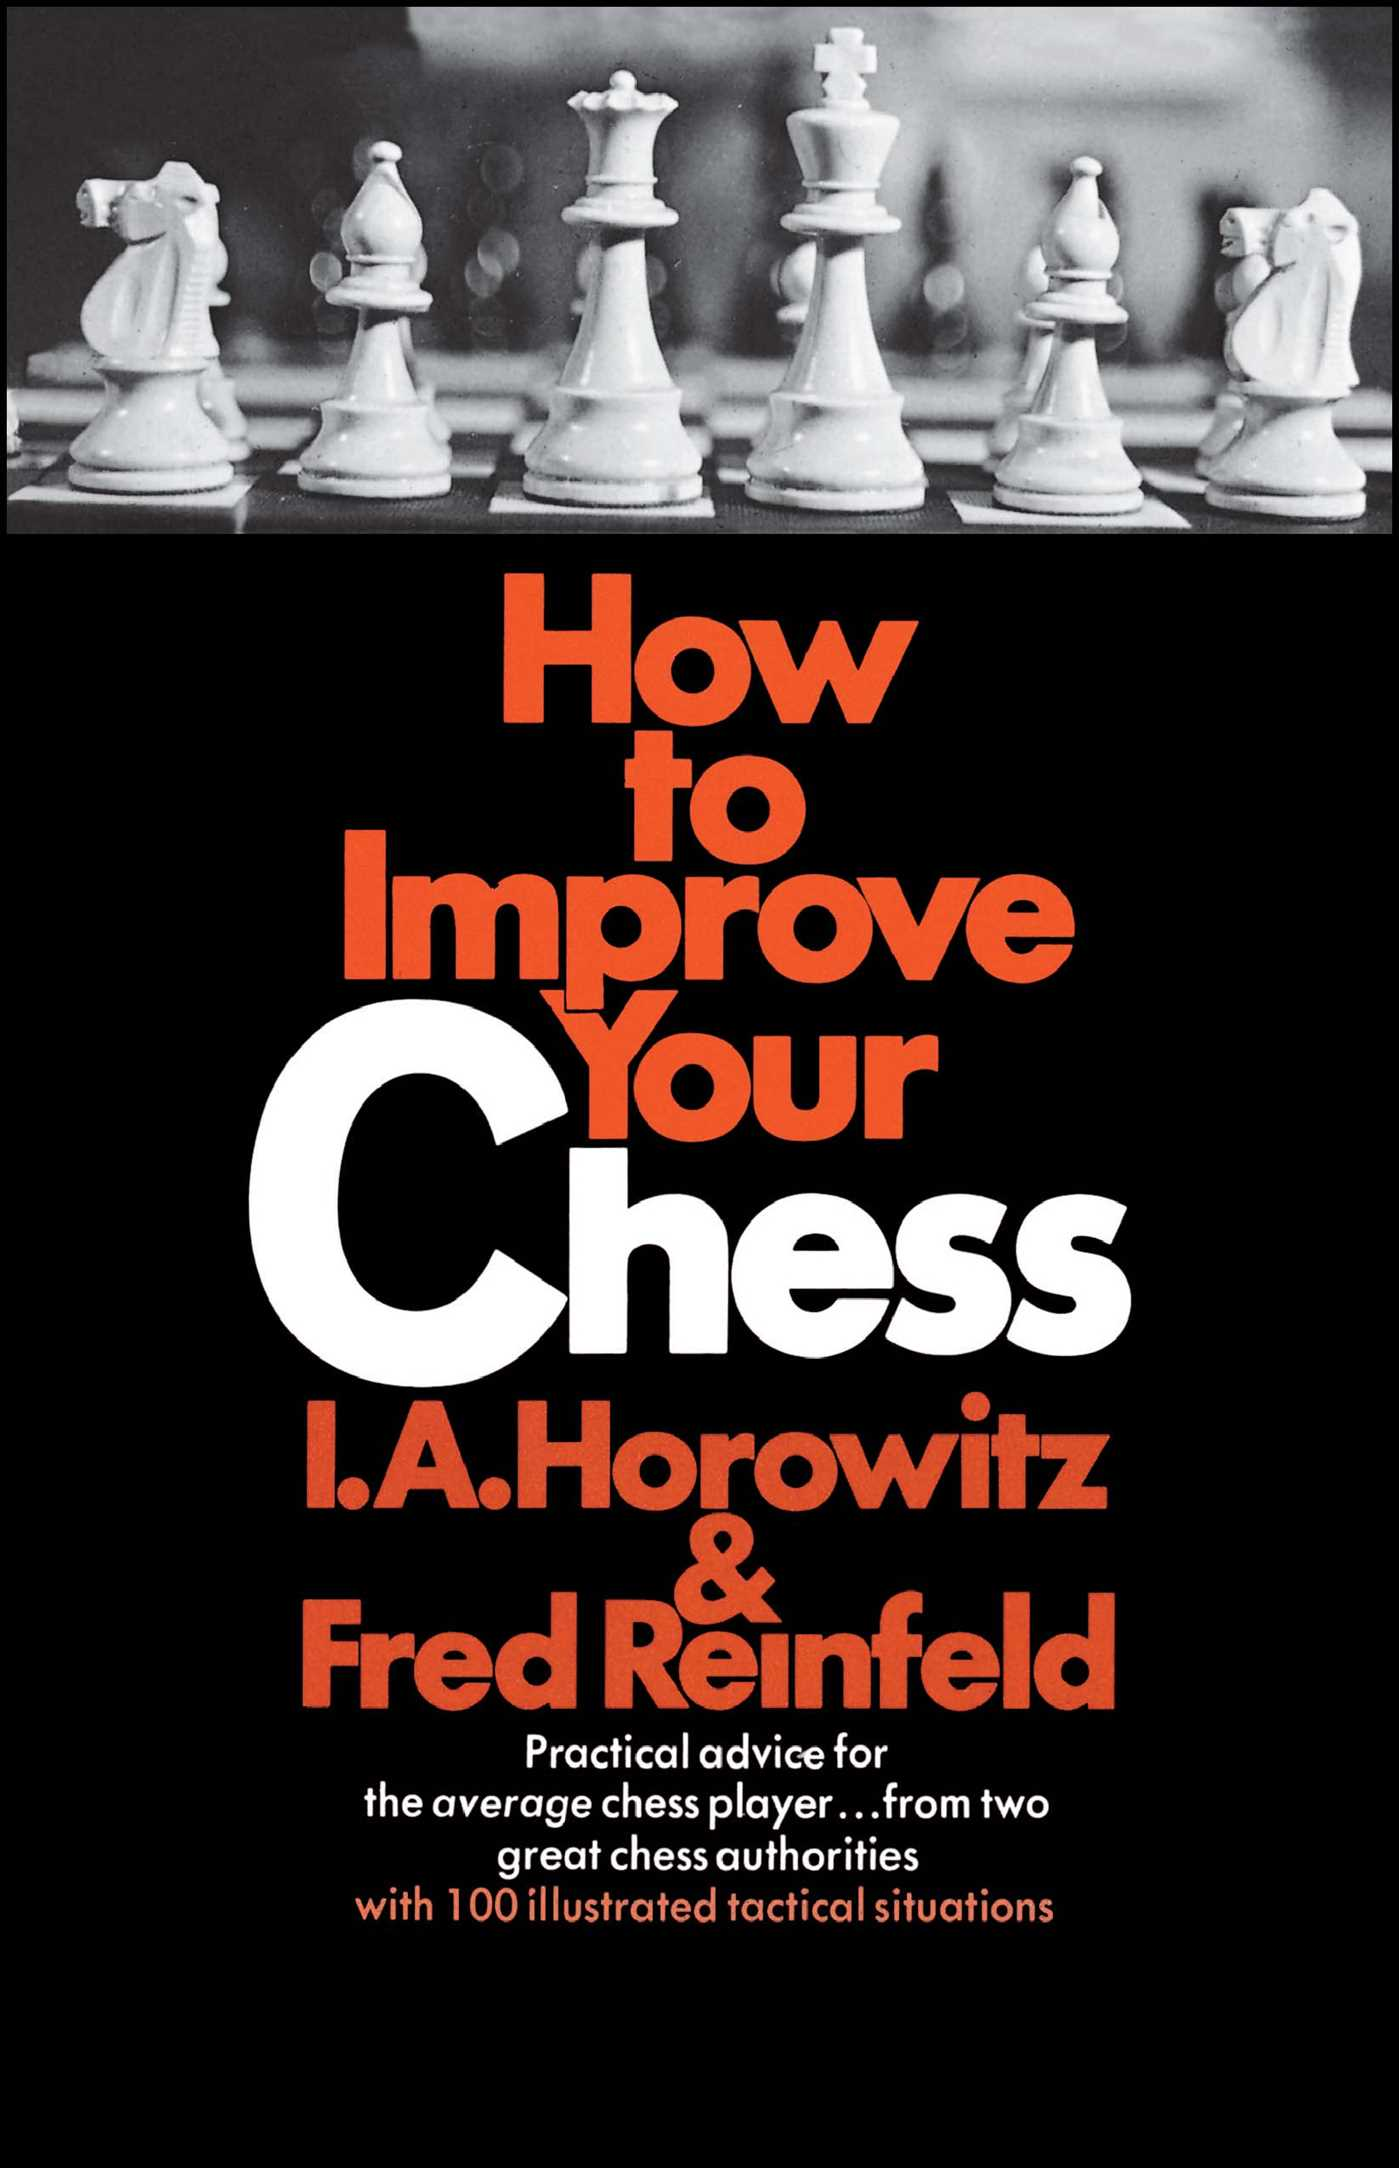 How-to-improve-your-chess-primary-9780020288909_hr